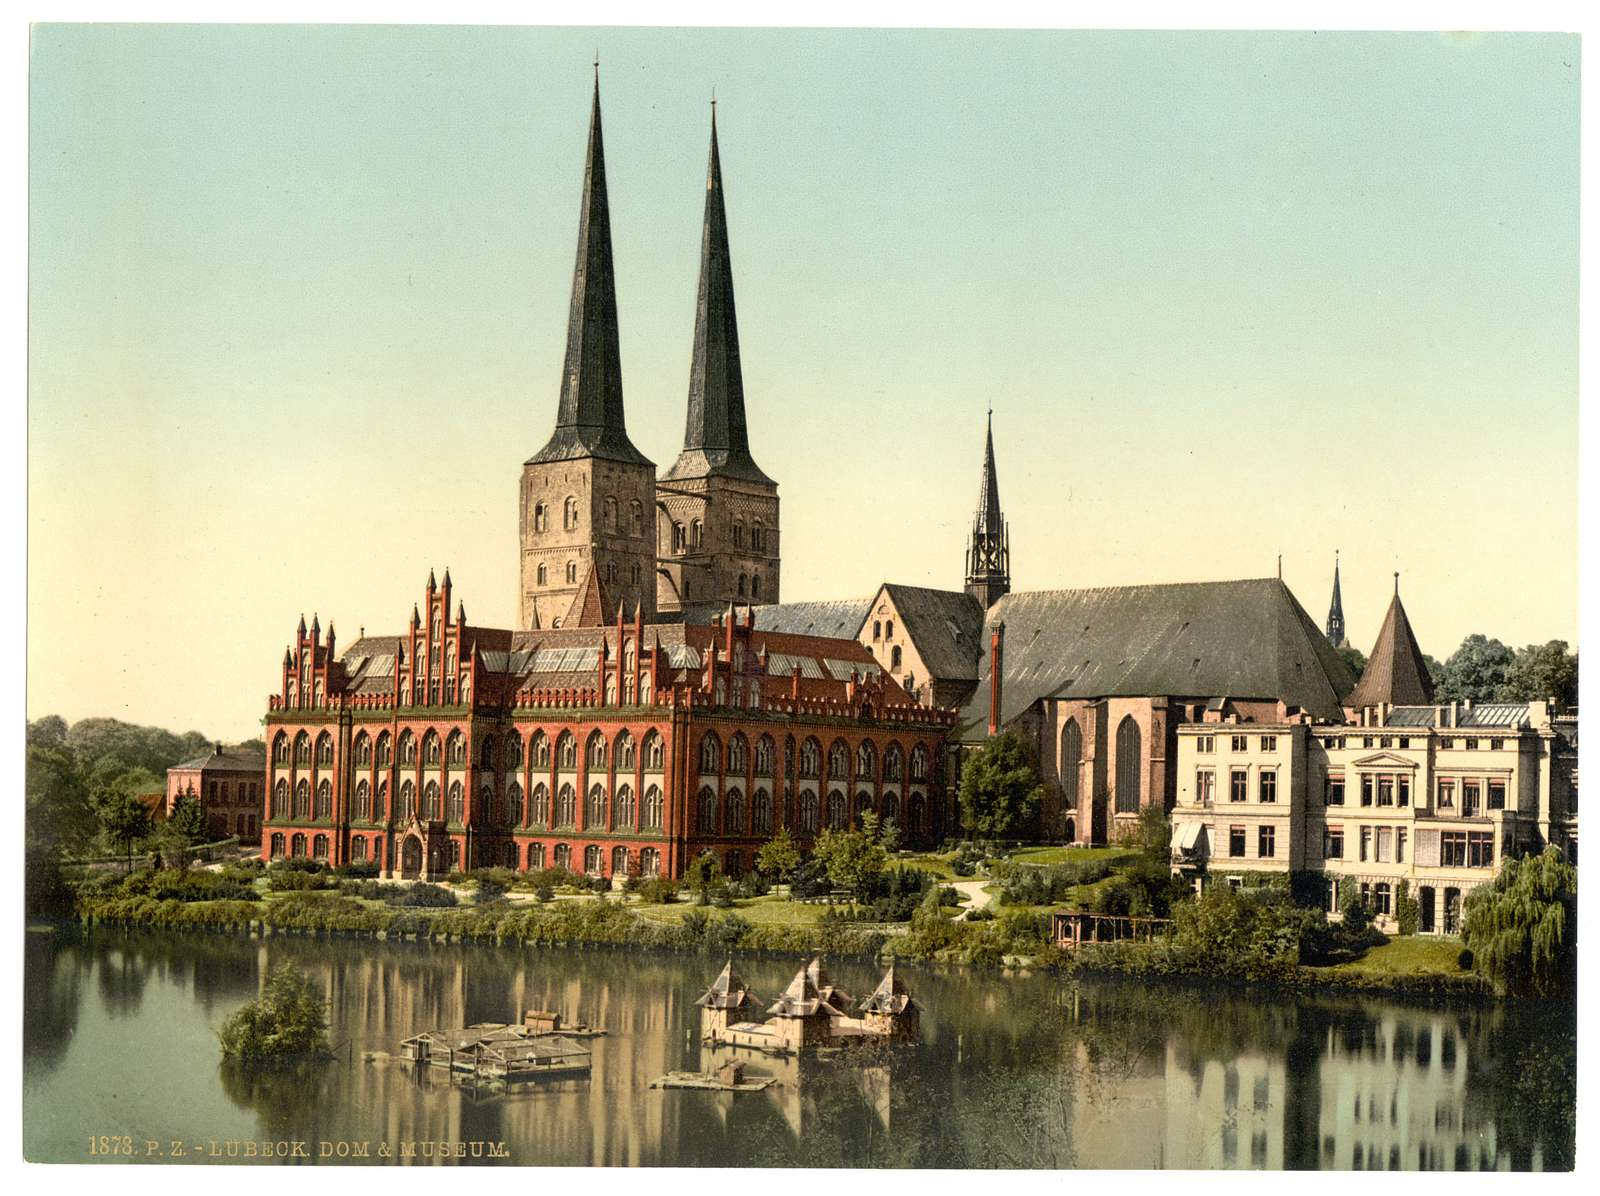 [The cathedral and museum, Lubeck, Germany]